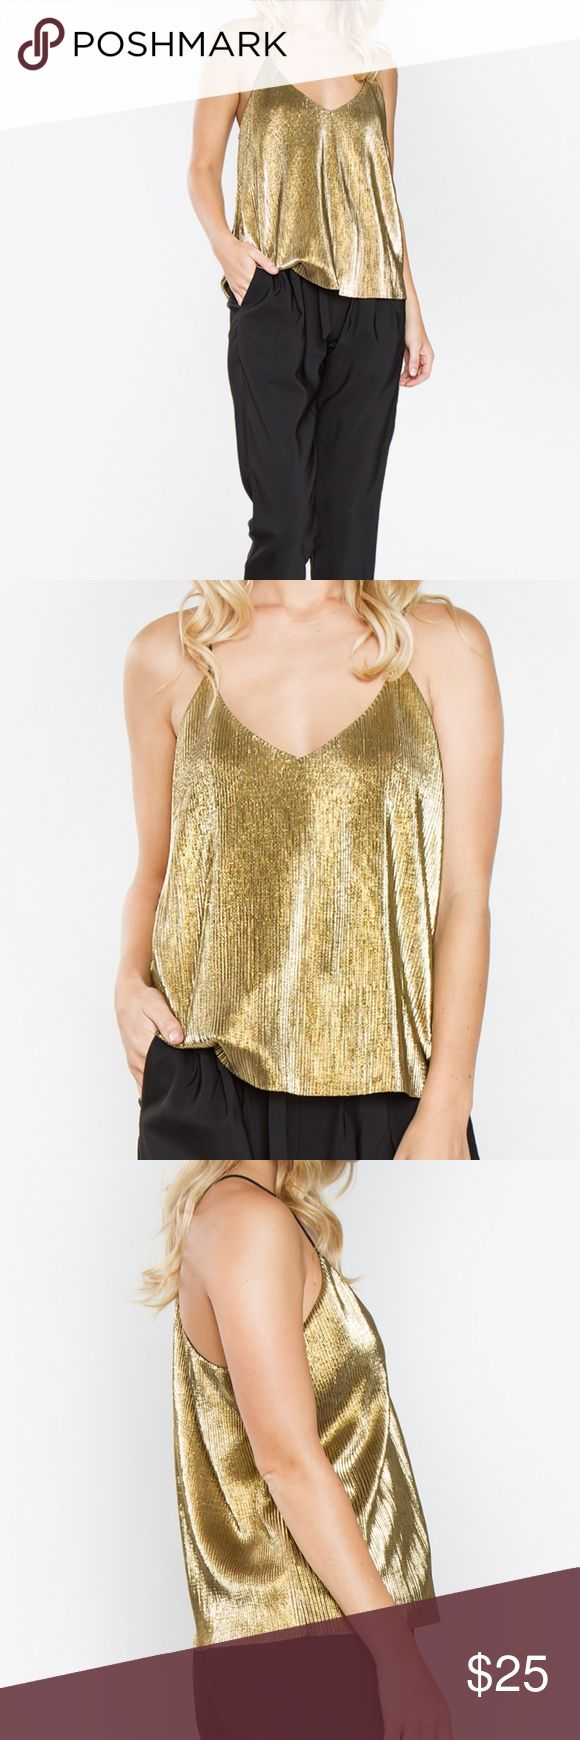 "NWT Gold Metallic Tank Top Gold Metallic Tank Top  *Pleated Metallic Cami with Thin Strap Detail  *V Neck Line  *Lined  *100% Polyester  *Color: Gold  *Hand Wash Cold and Dry Clean        Size and Fit  *Model is wearing a Small  *Length: 19""  *Chest: 34.5"" Tops Tank Tops"